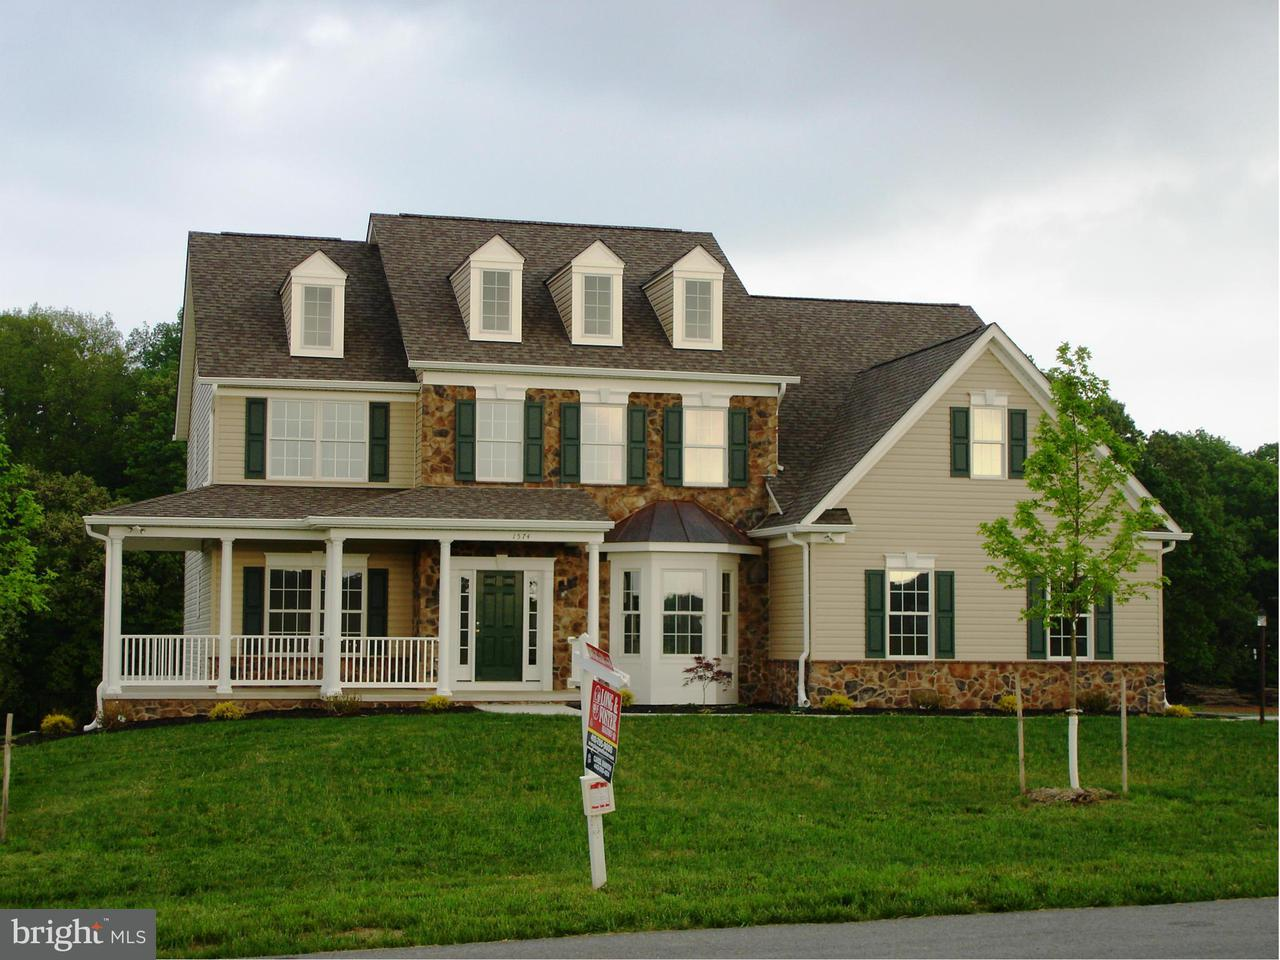 Single Family Home for Sale at 18 QUIET MEADOW WAY 18 QUIET MEADOW WAY Hampstead, Maryland 21074 United States